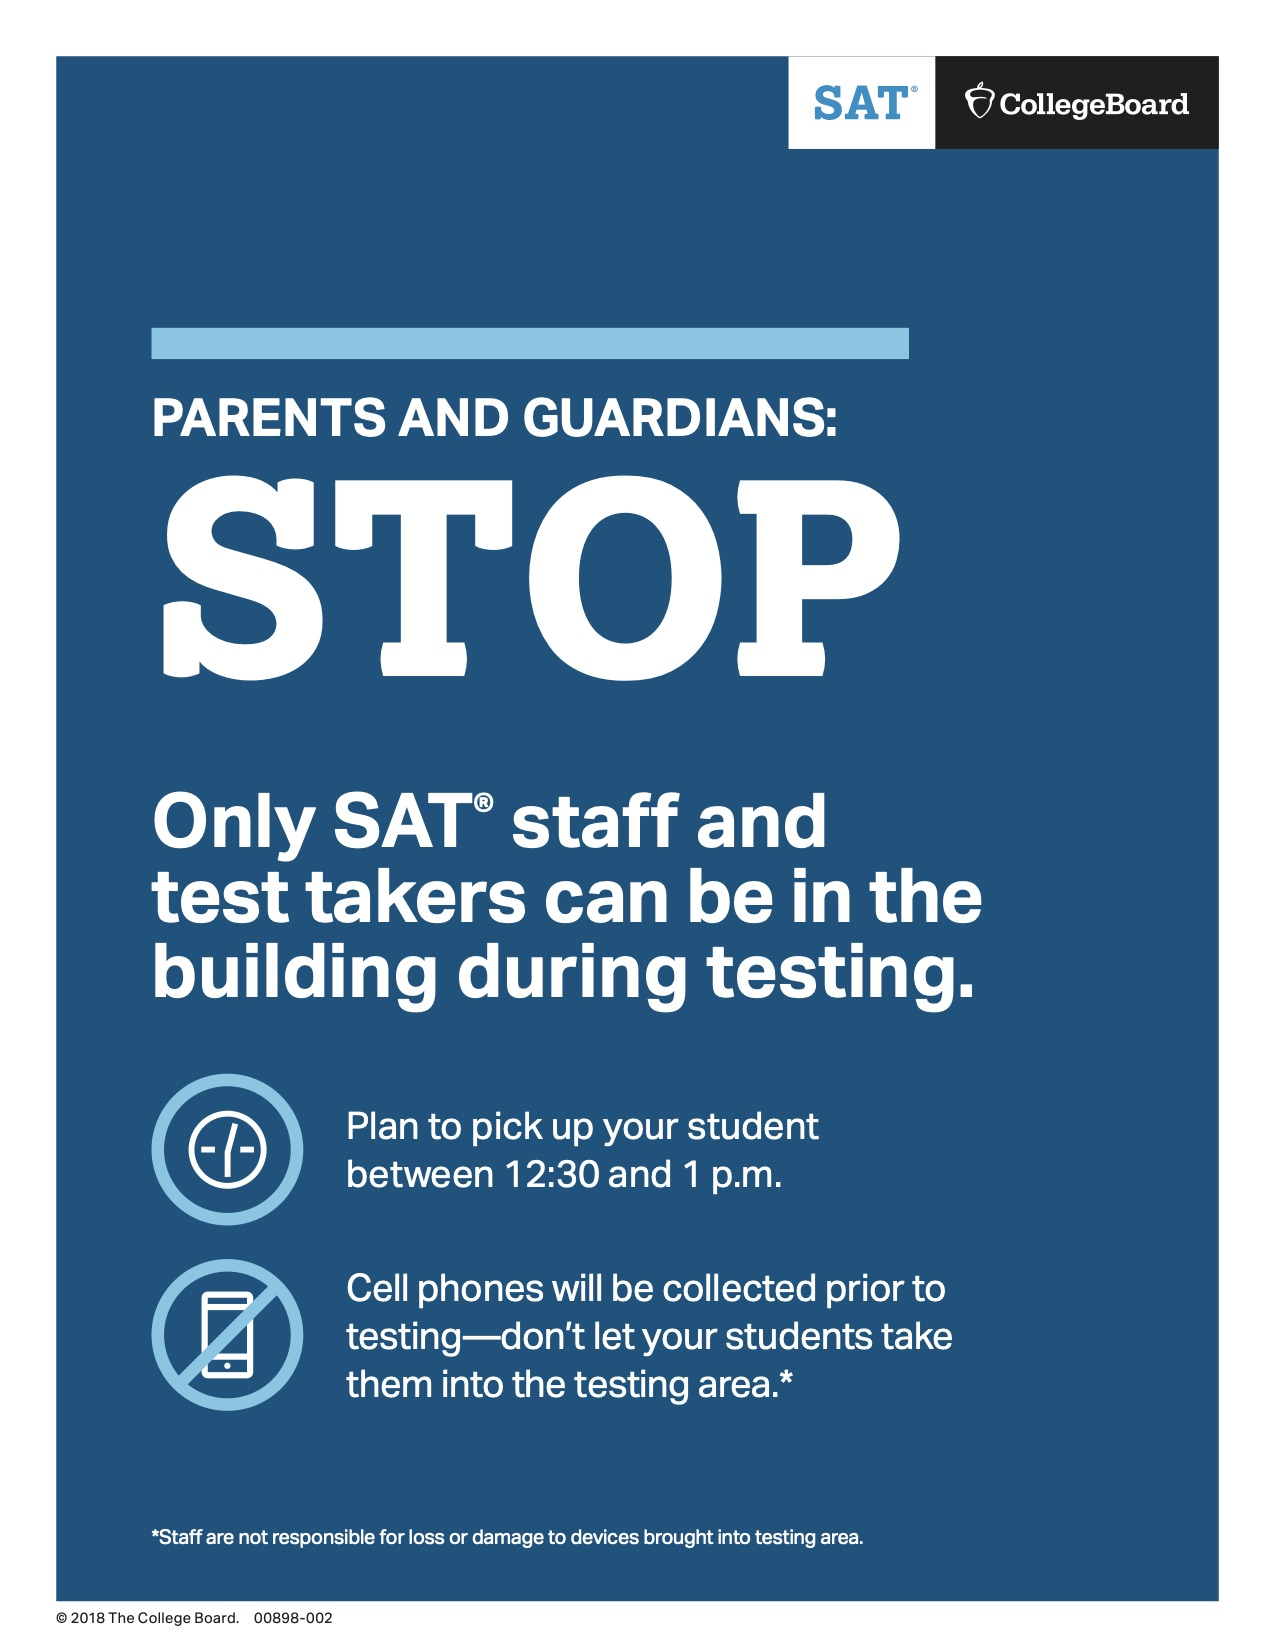 SAT Parents and Guardians Poster